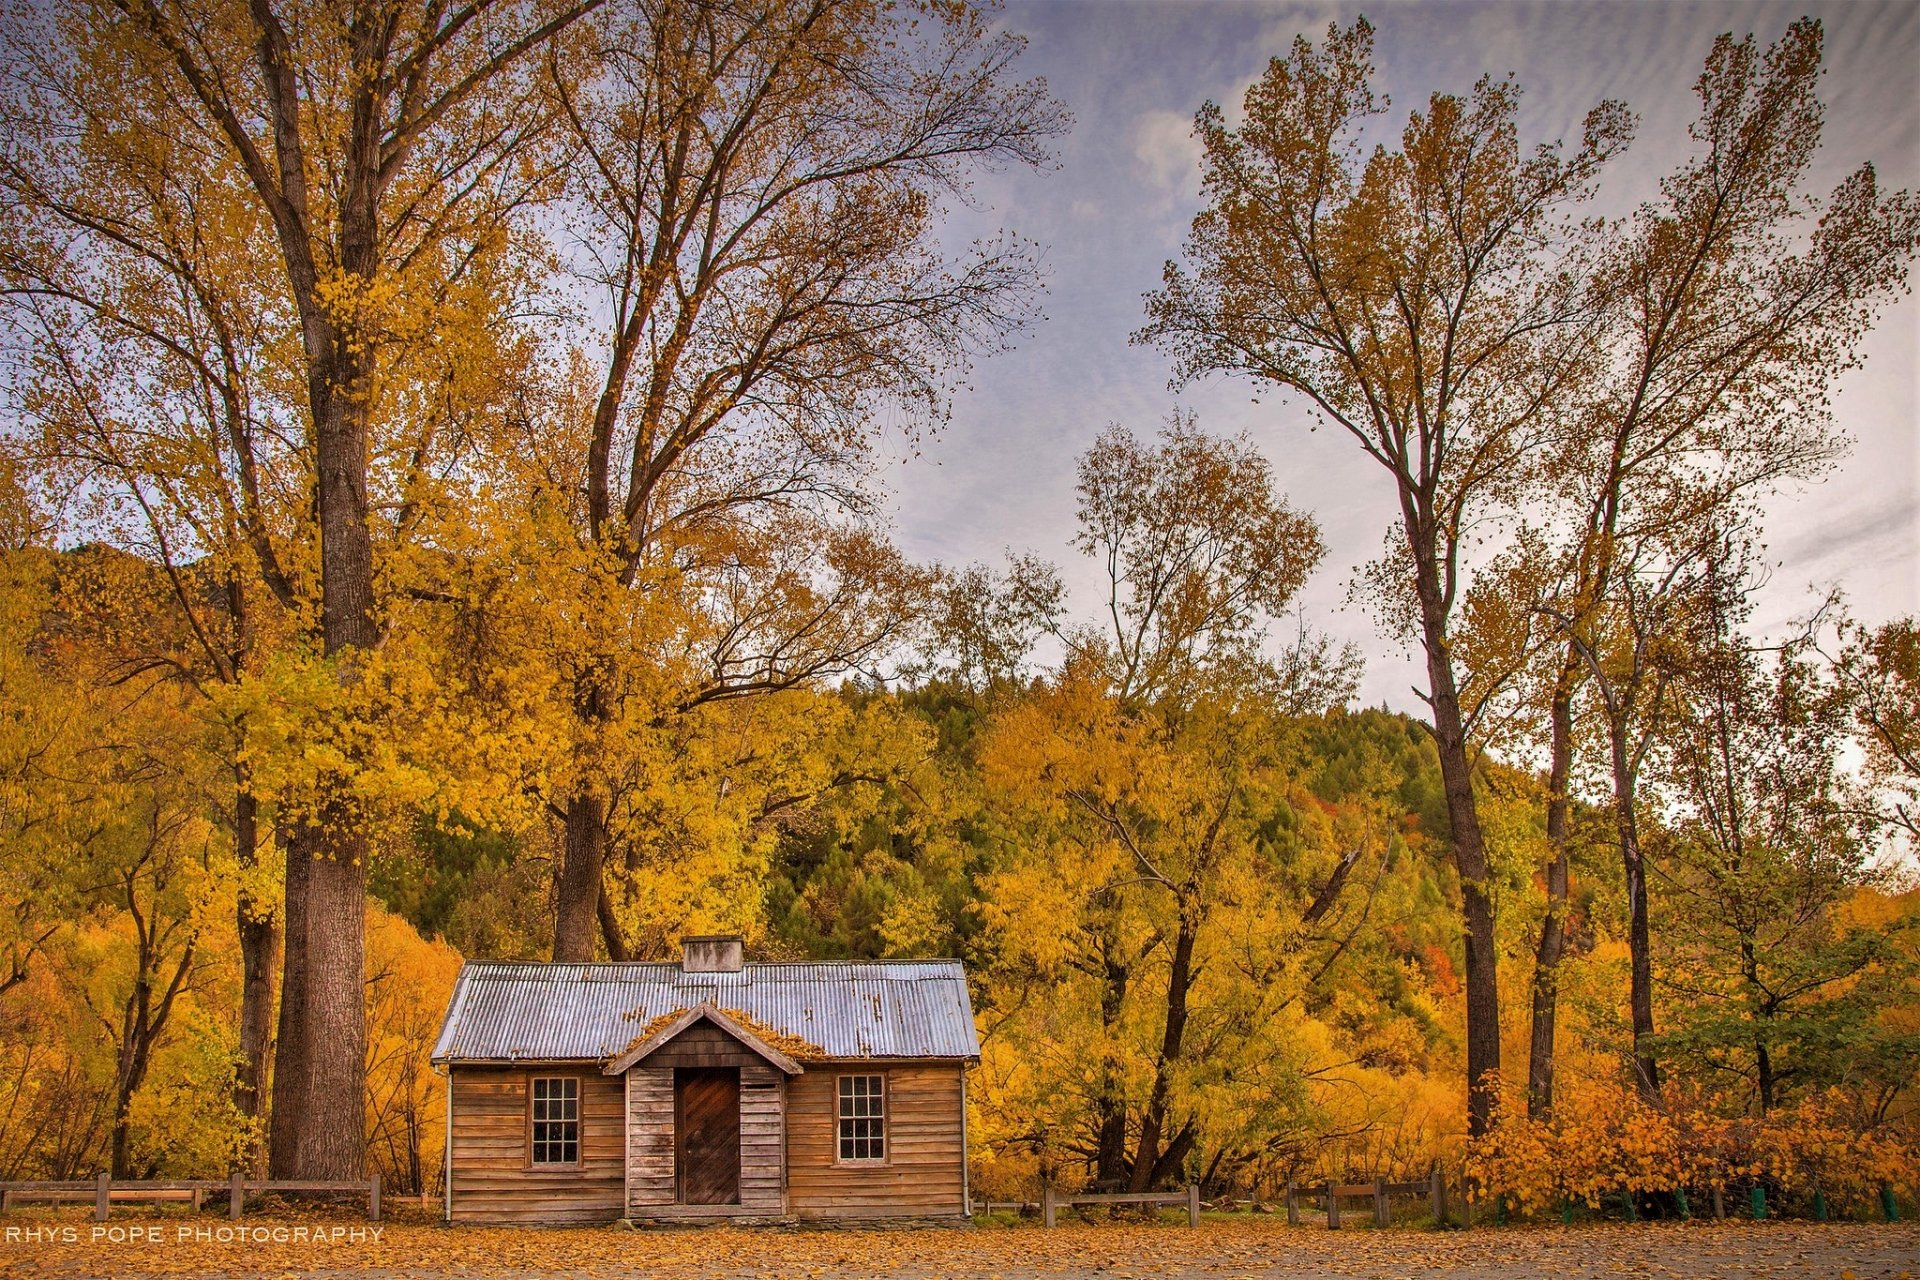 Man Made - Cabin  Wood Forest Fall Foliage Wallpaper